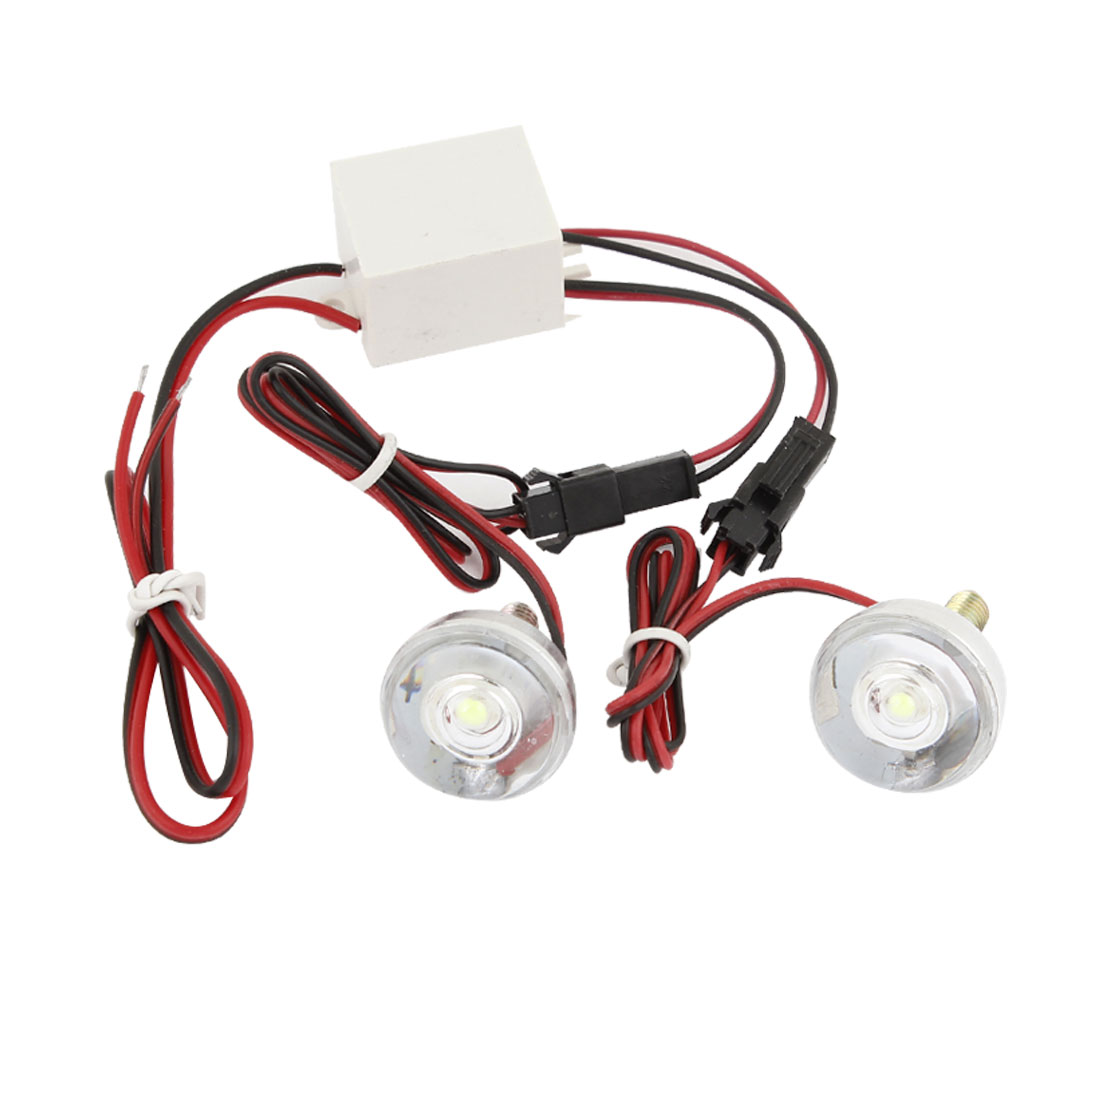 2 in 1 Clear Round Casing White LED Motorcycle Flash Lights Lamps DC 12V